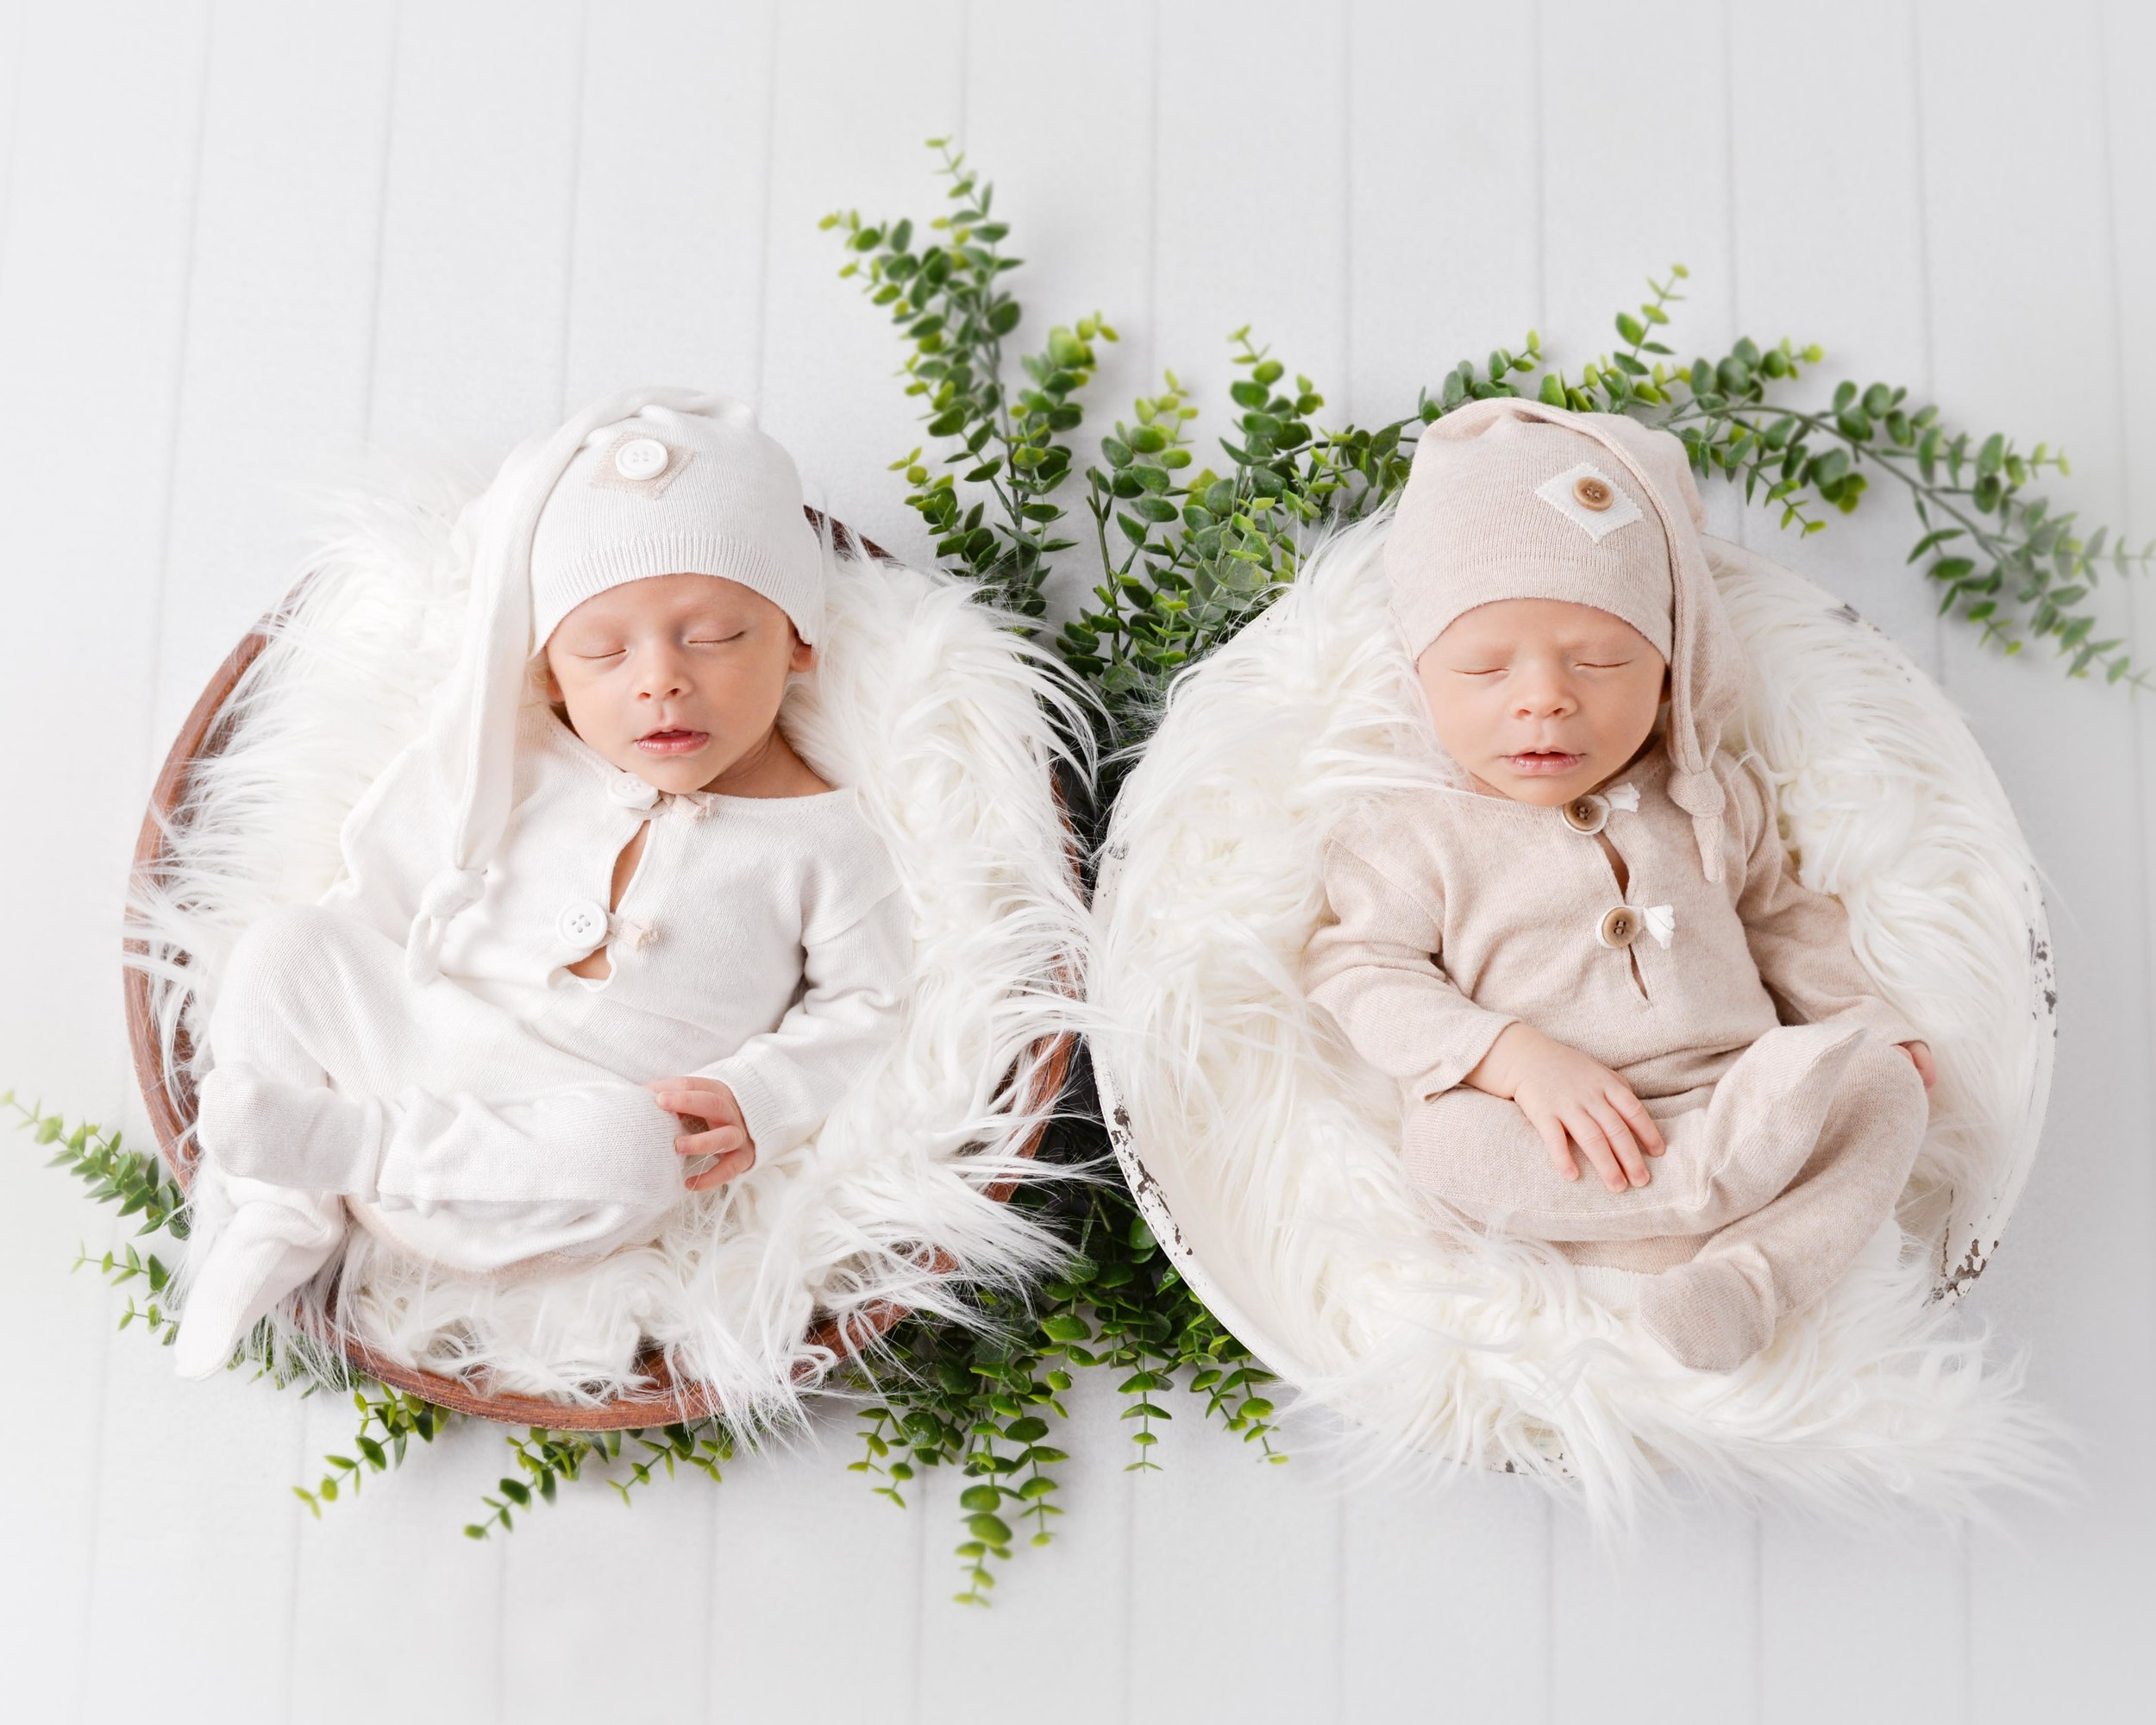 twin-newborn-photos-baby-images-photographer-infant-photography-spokane-washington (5 of 6).jpg